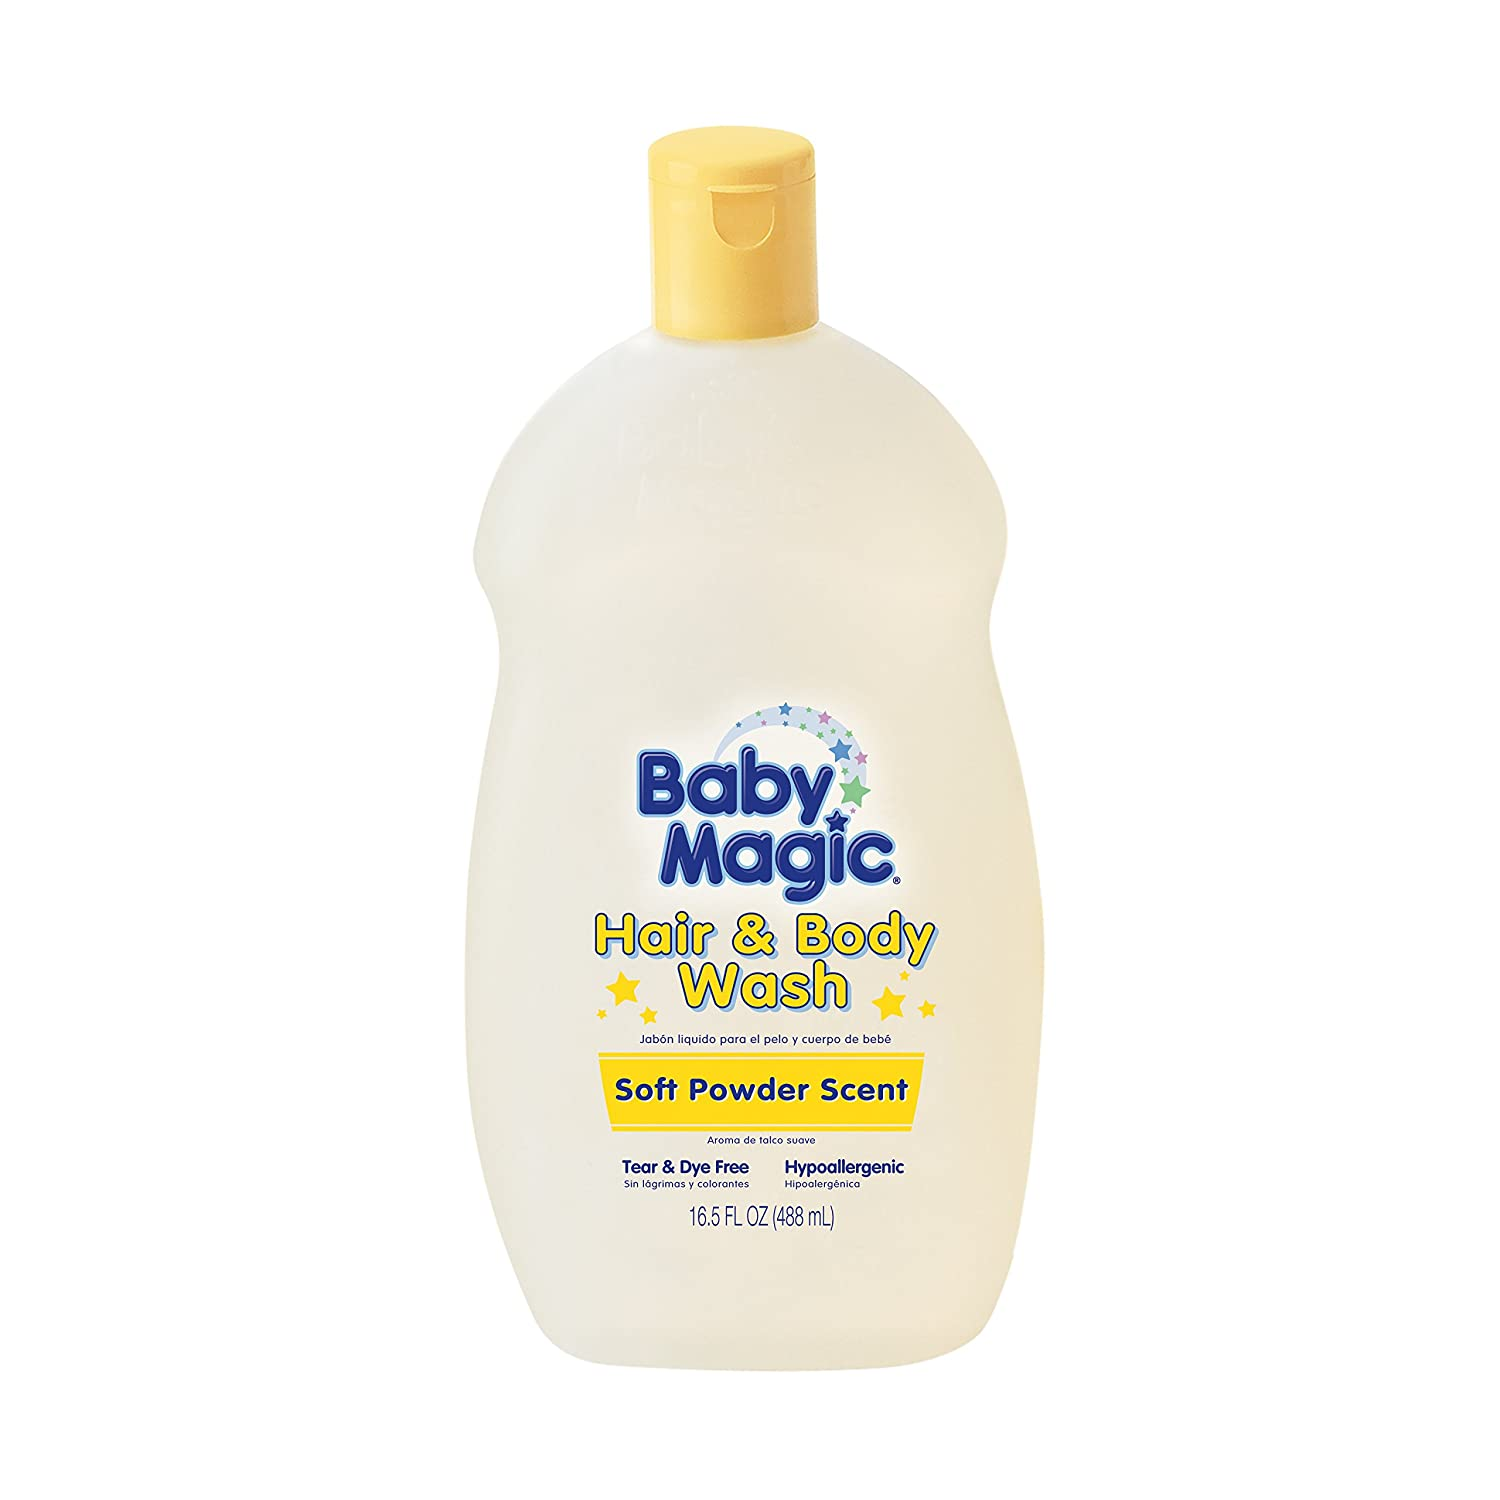 Baby Magic Hair And Body Wash 16.5oz Soft Powder Scent NI05005